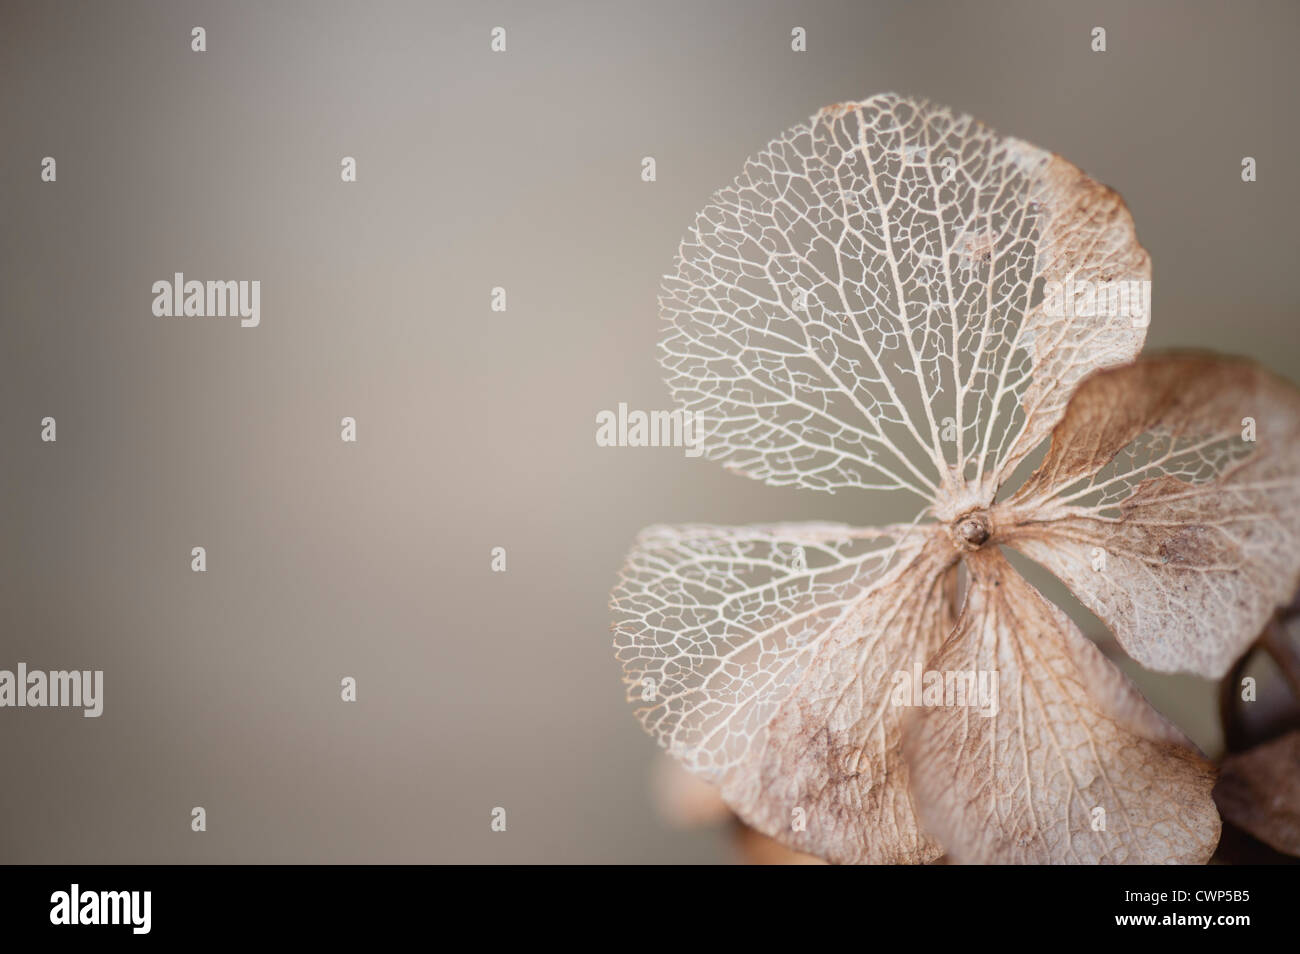 Physalis husk - Stock Image